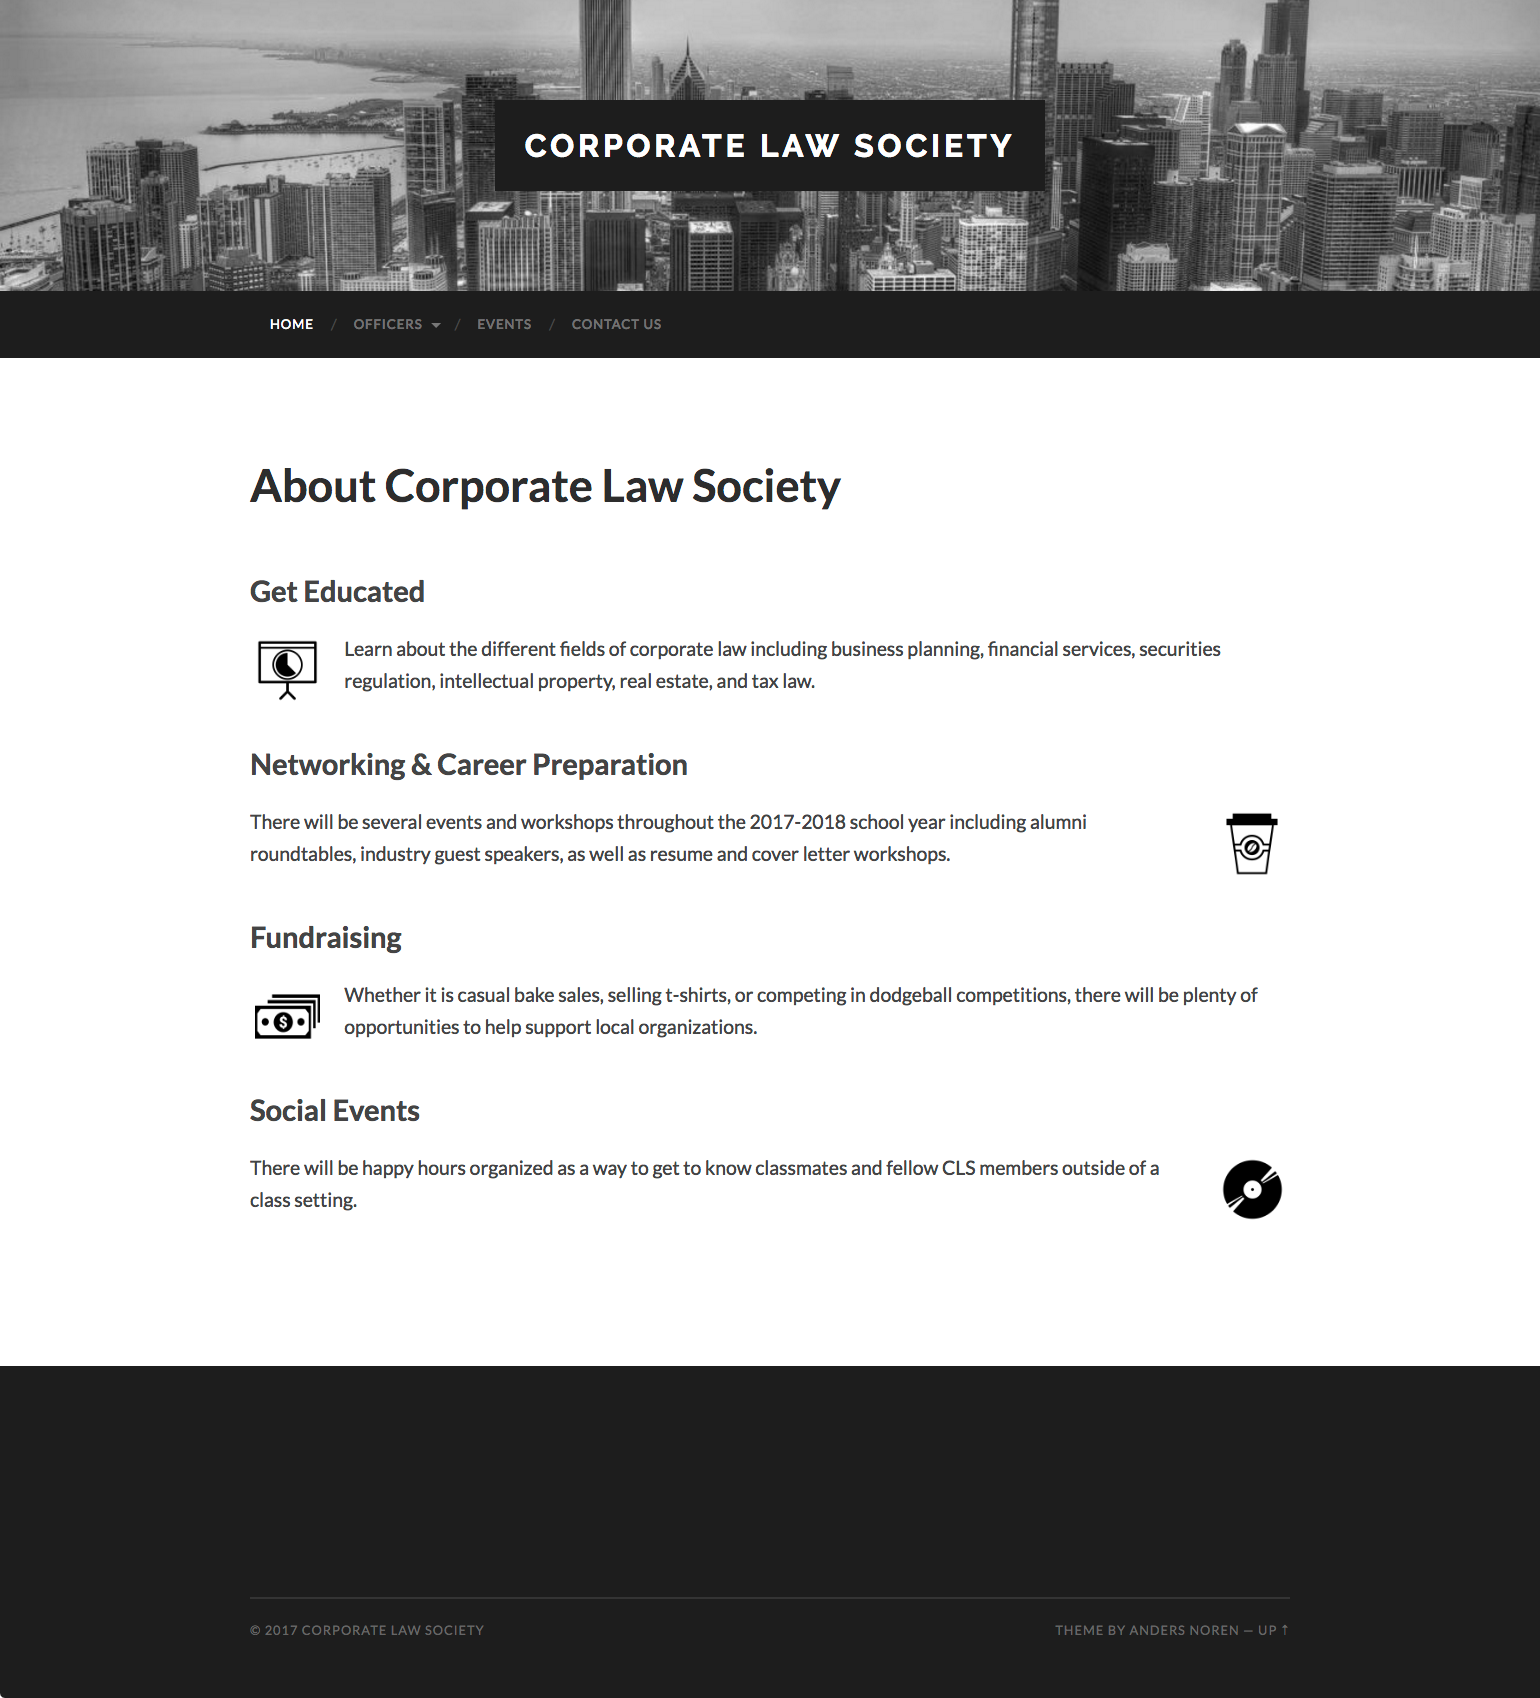 Corporate Law Society website screenshot